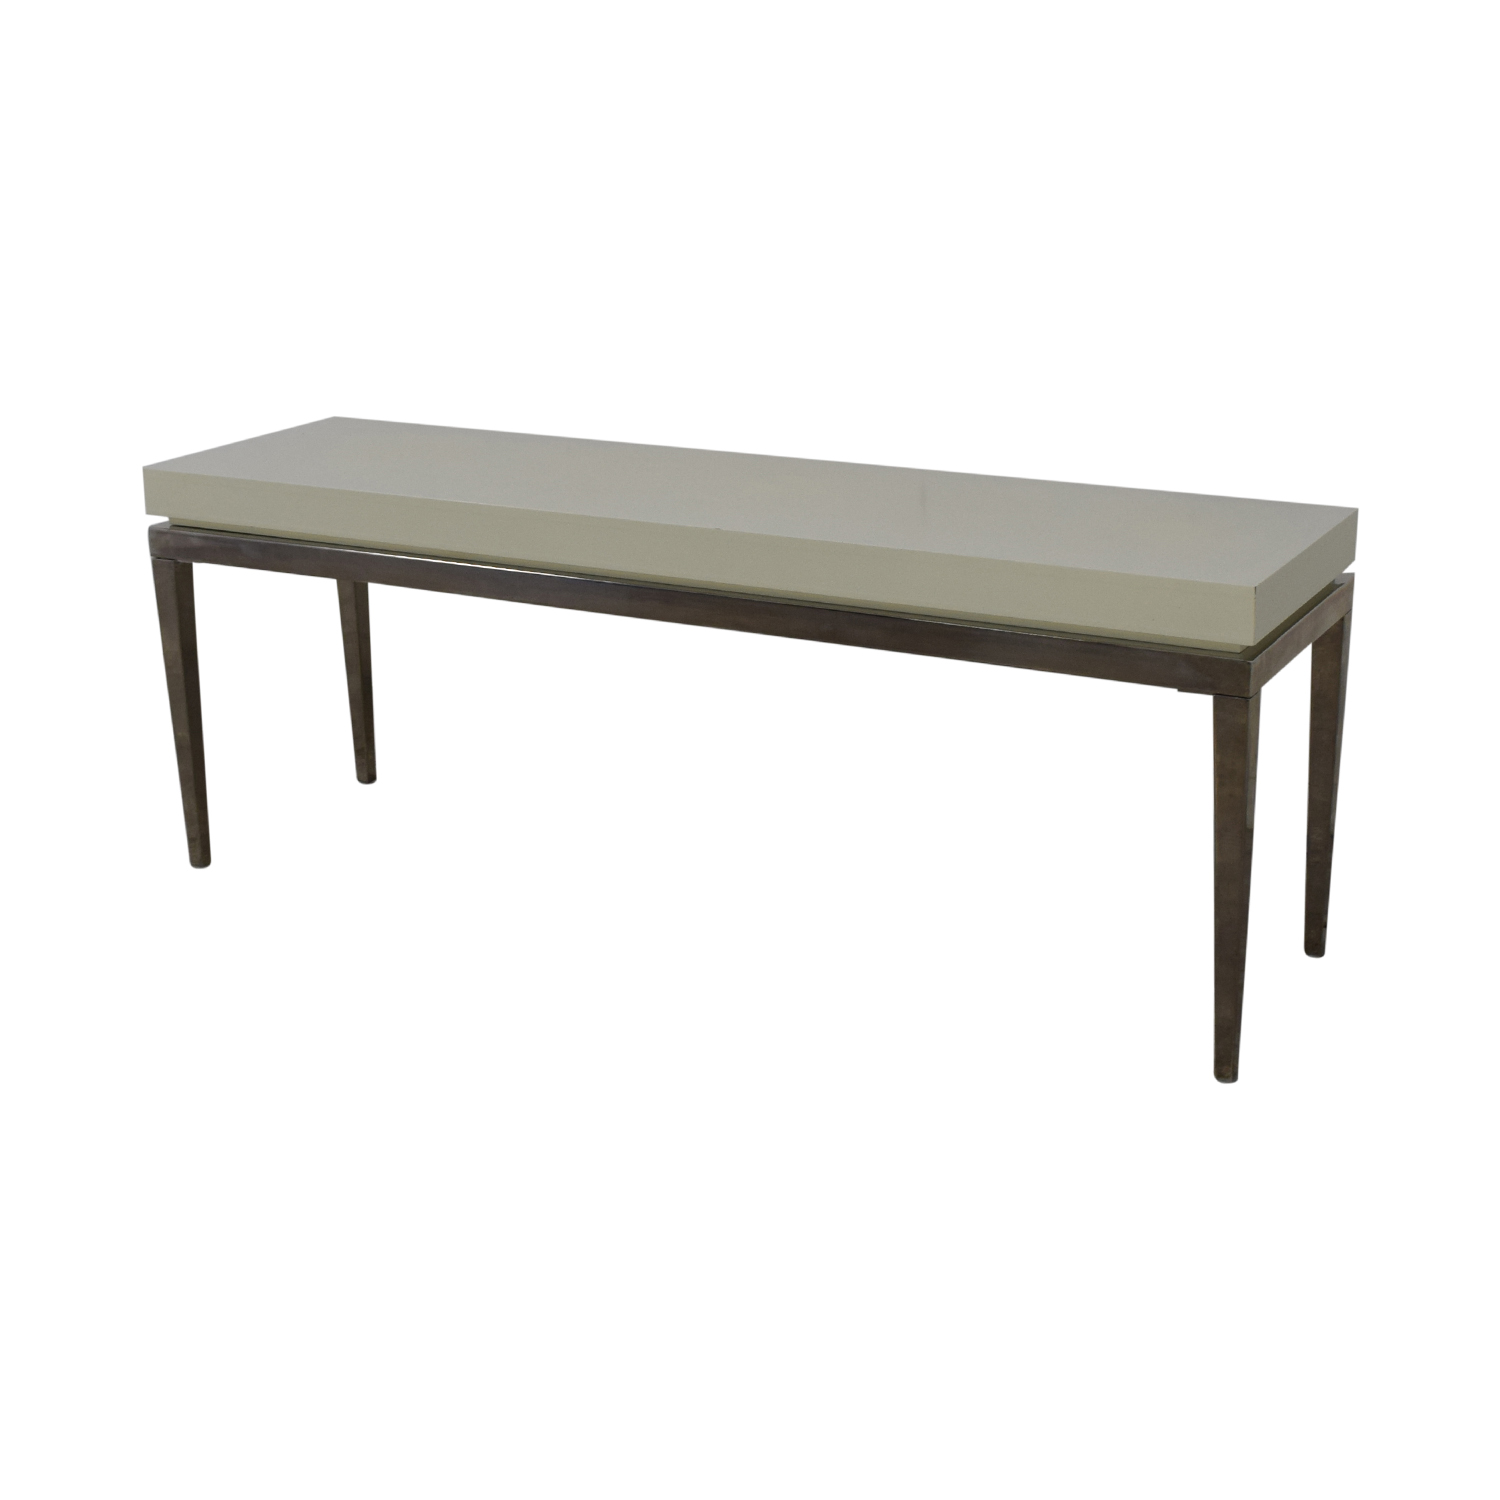 Jonathan Adler Jonathan Adler White and Silver Console Table nyc